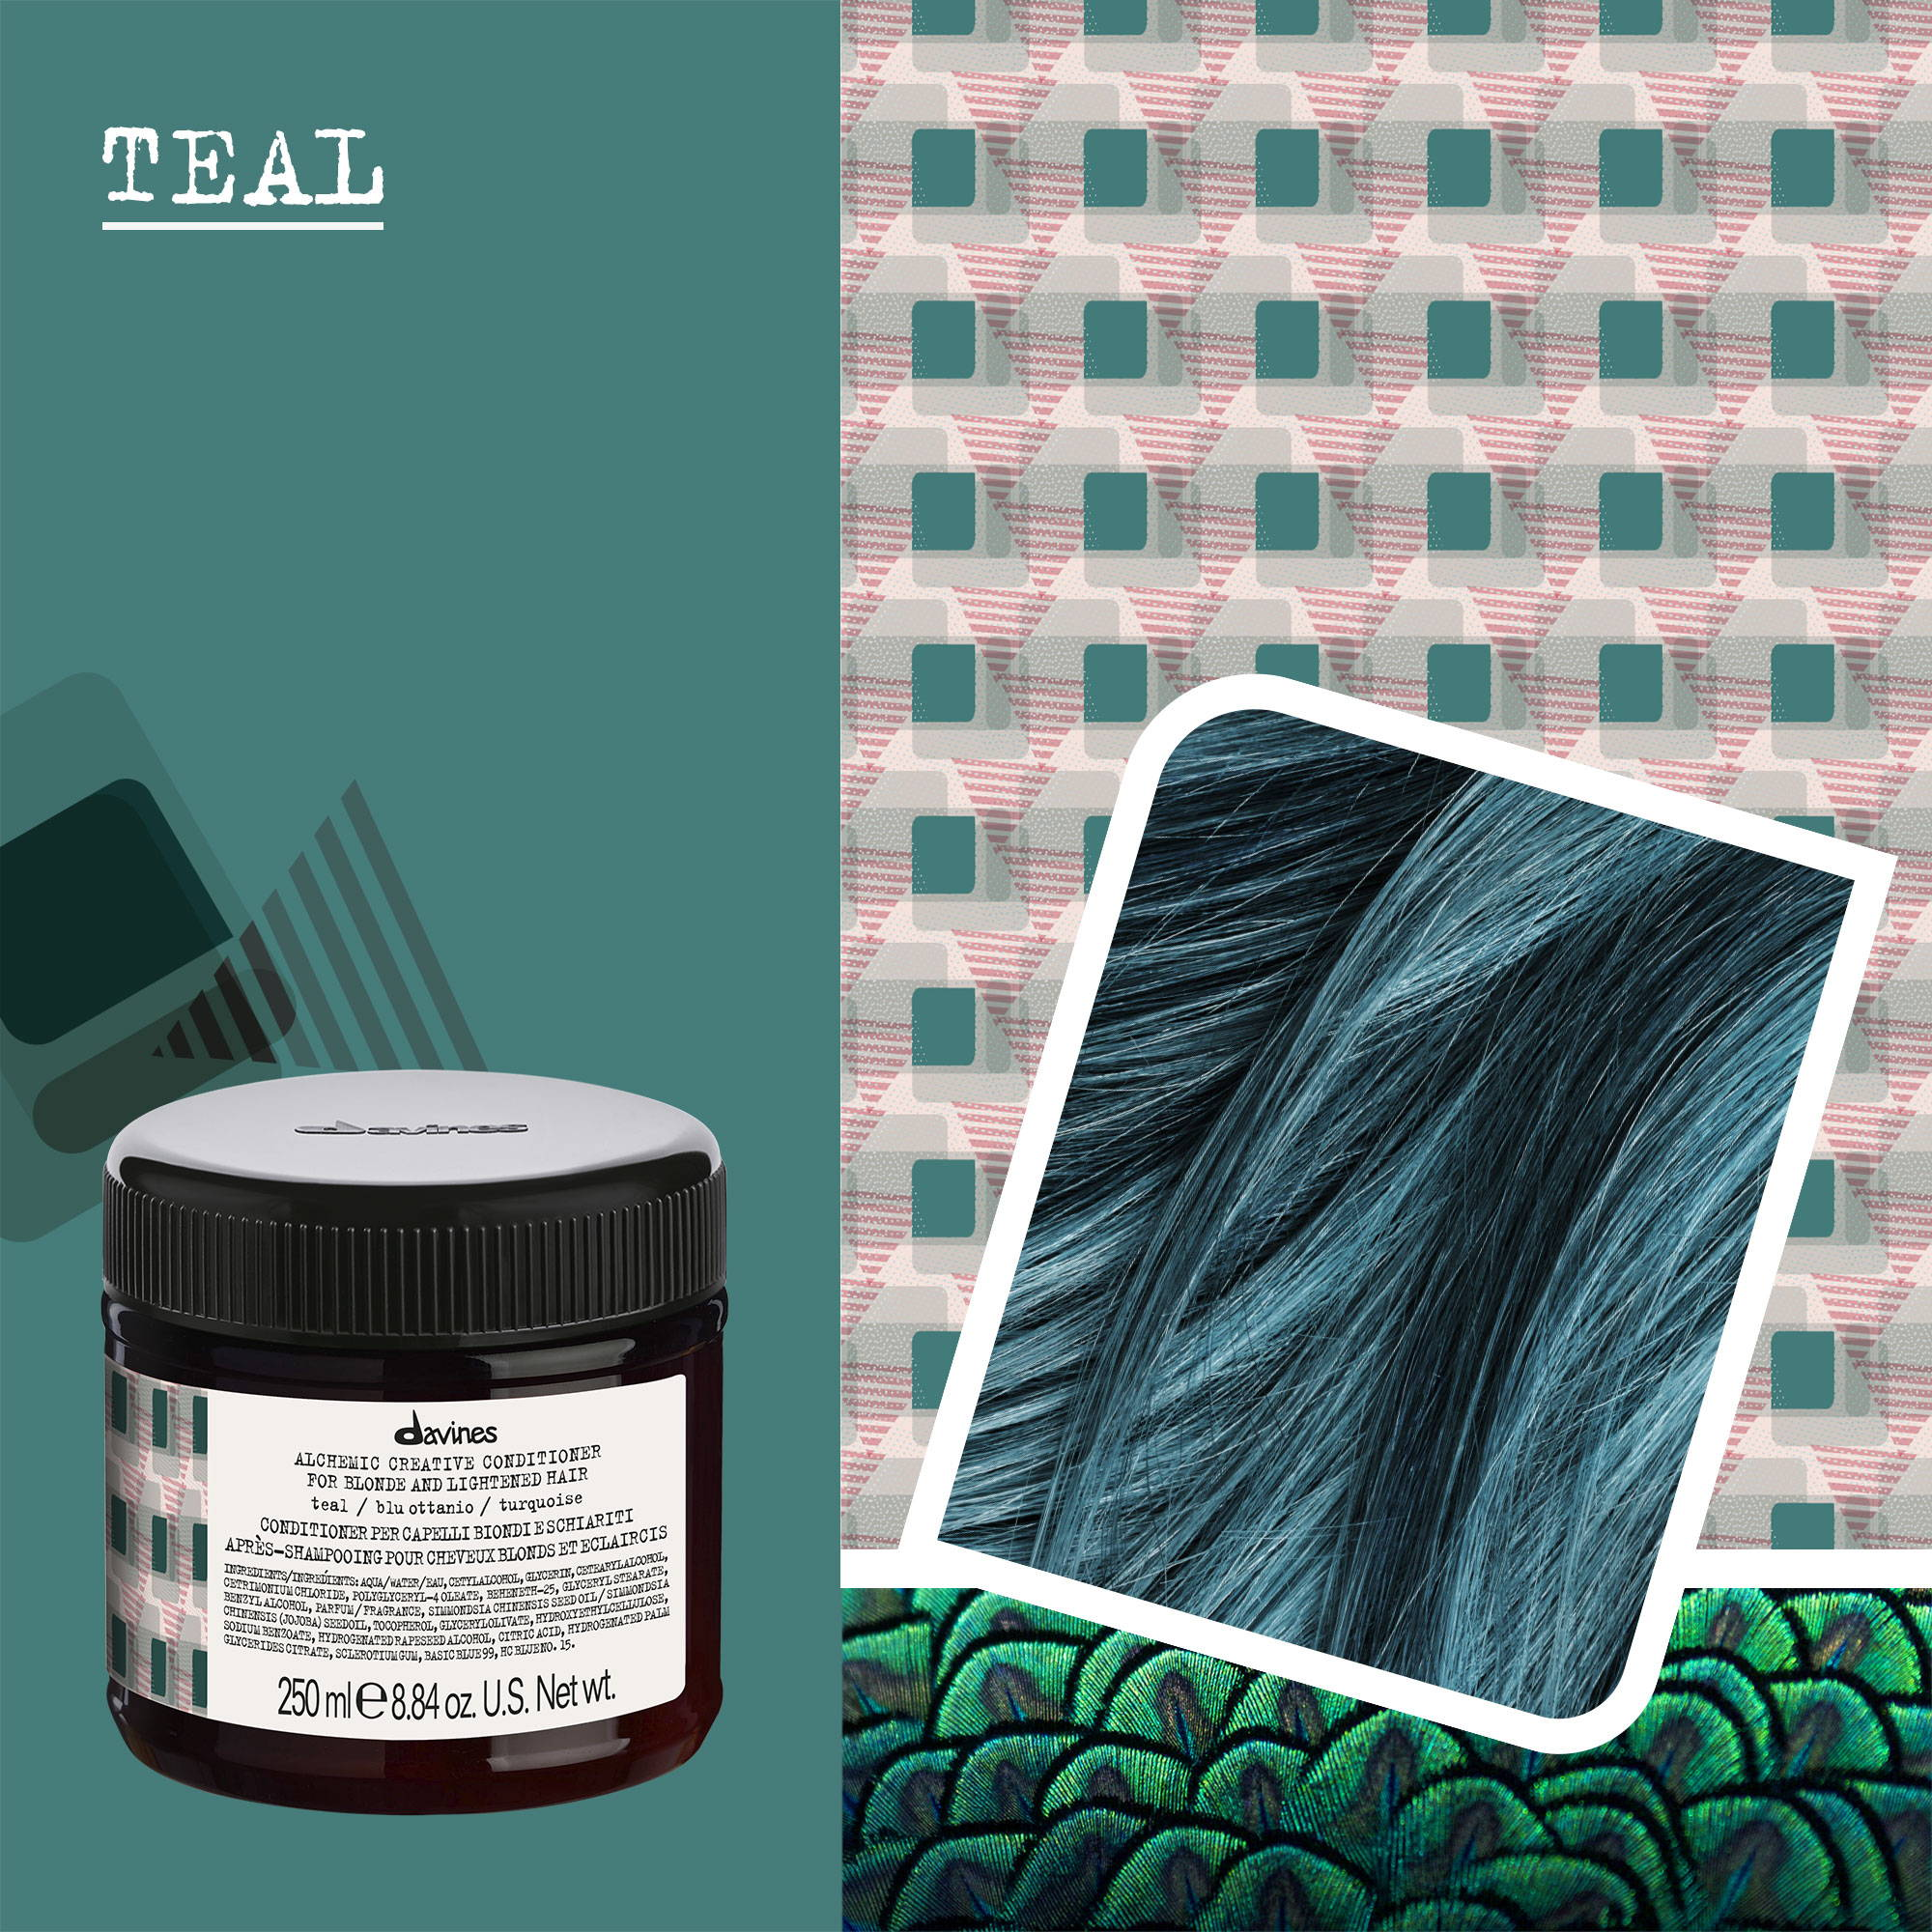 Teal Conditioner | 250ml